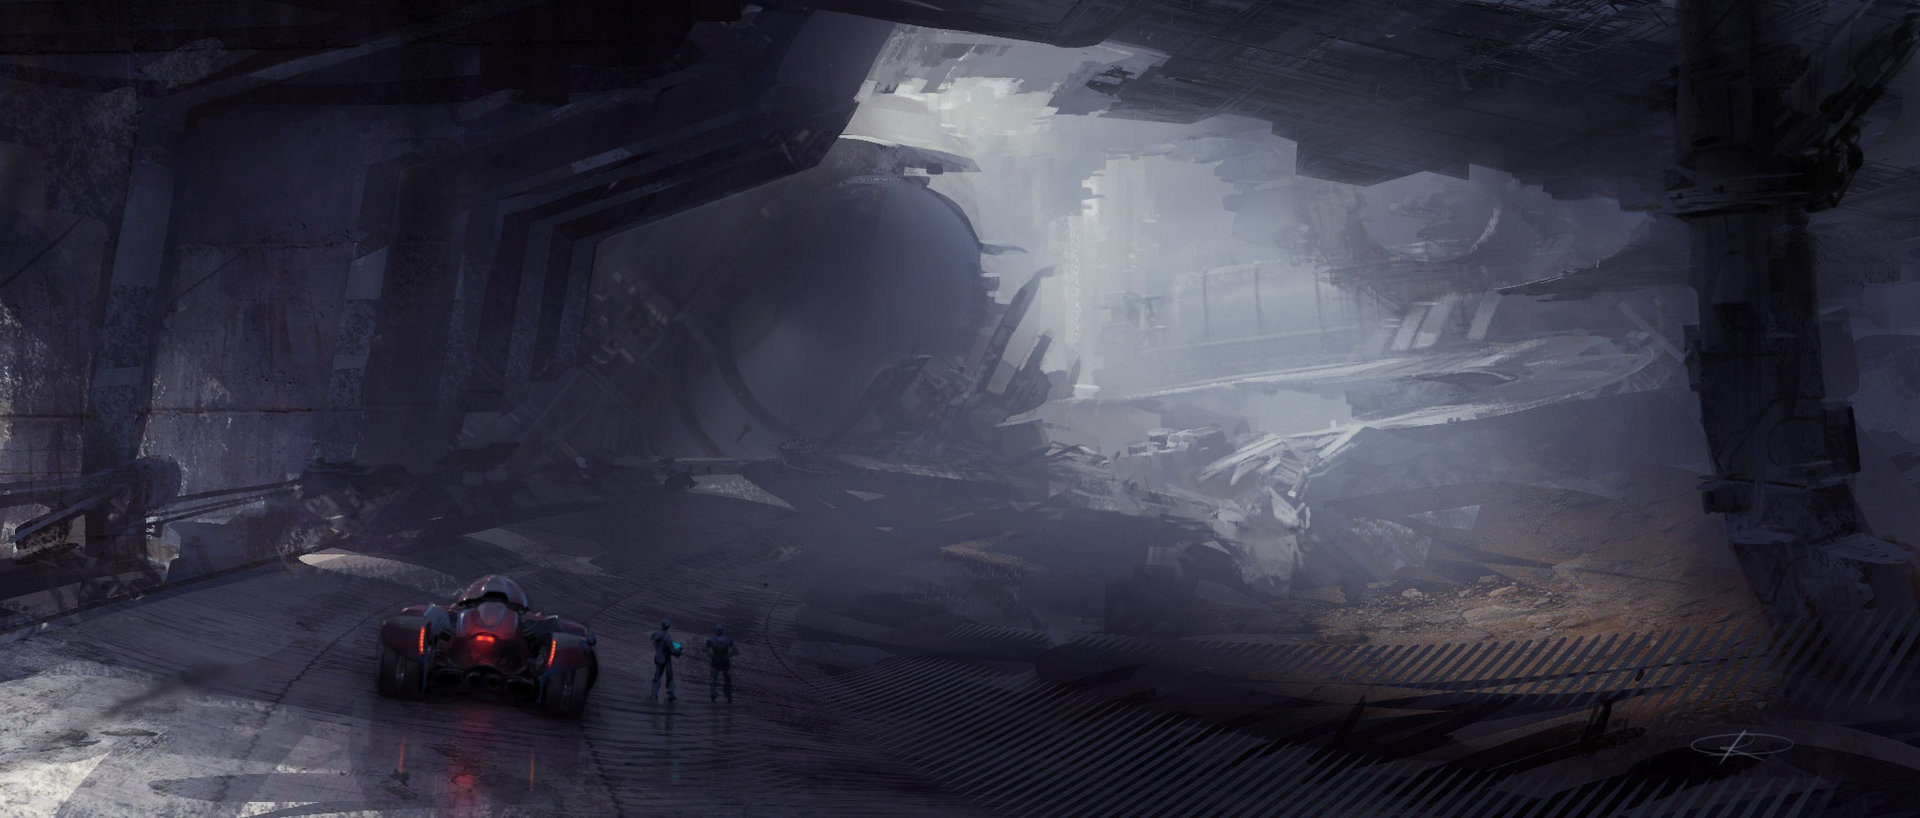 The Science Fiction Art of Maxim Revin